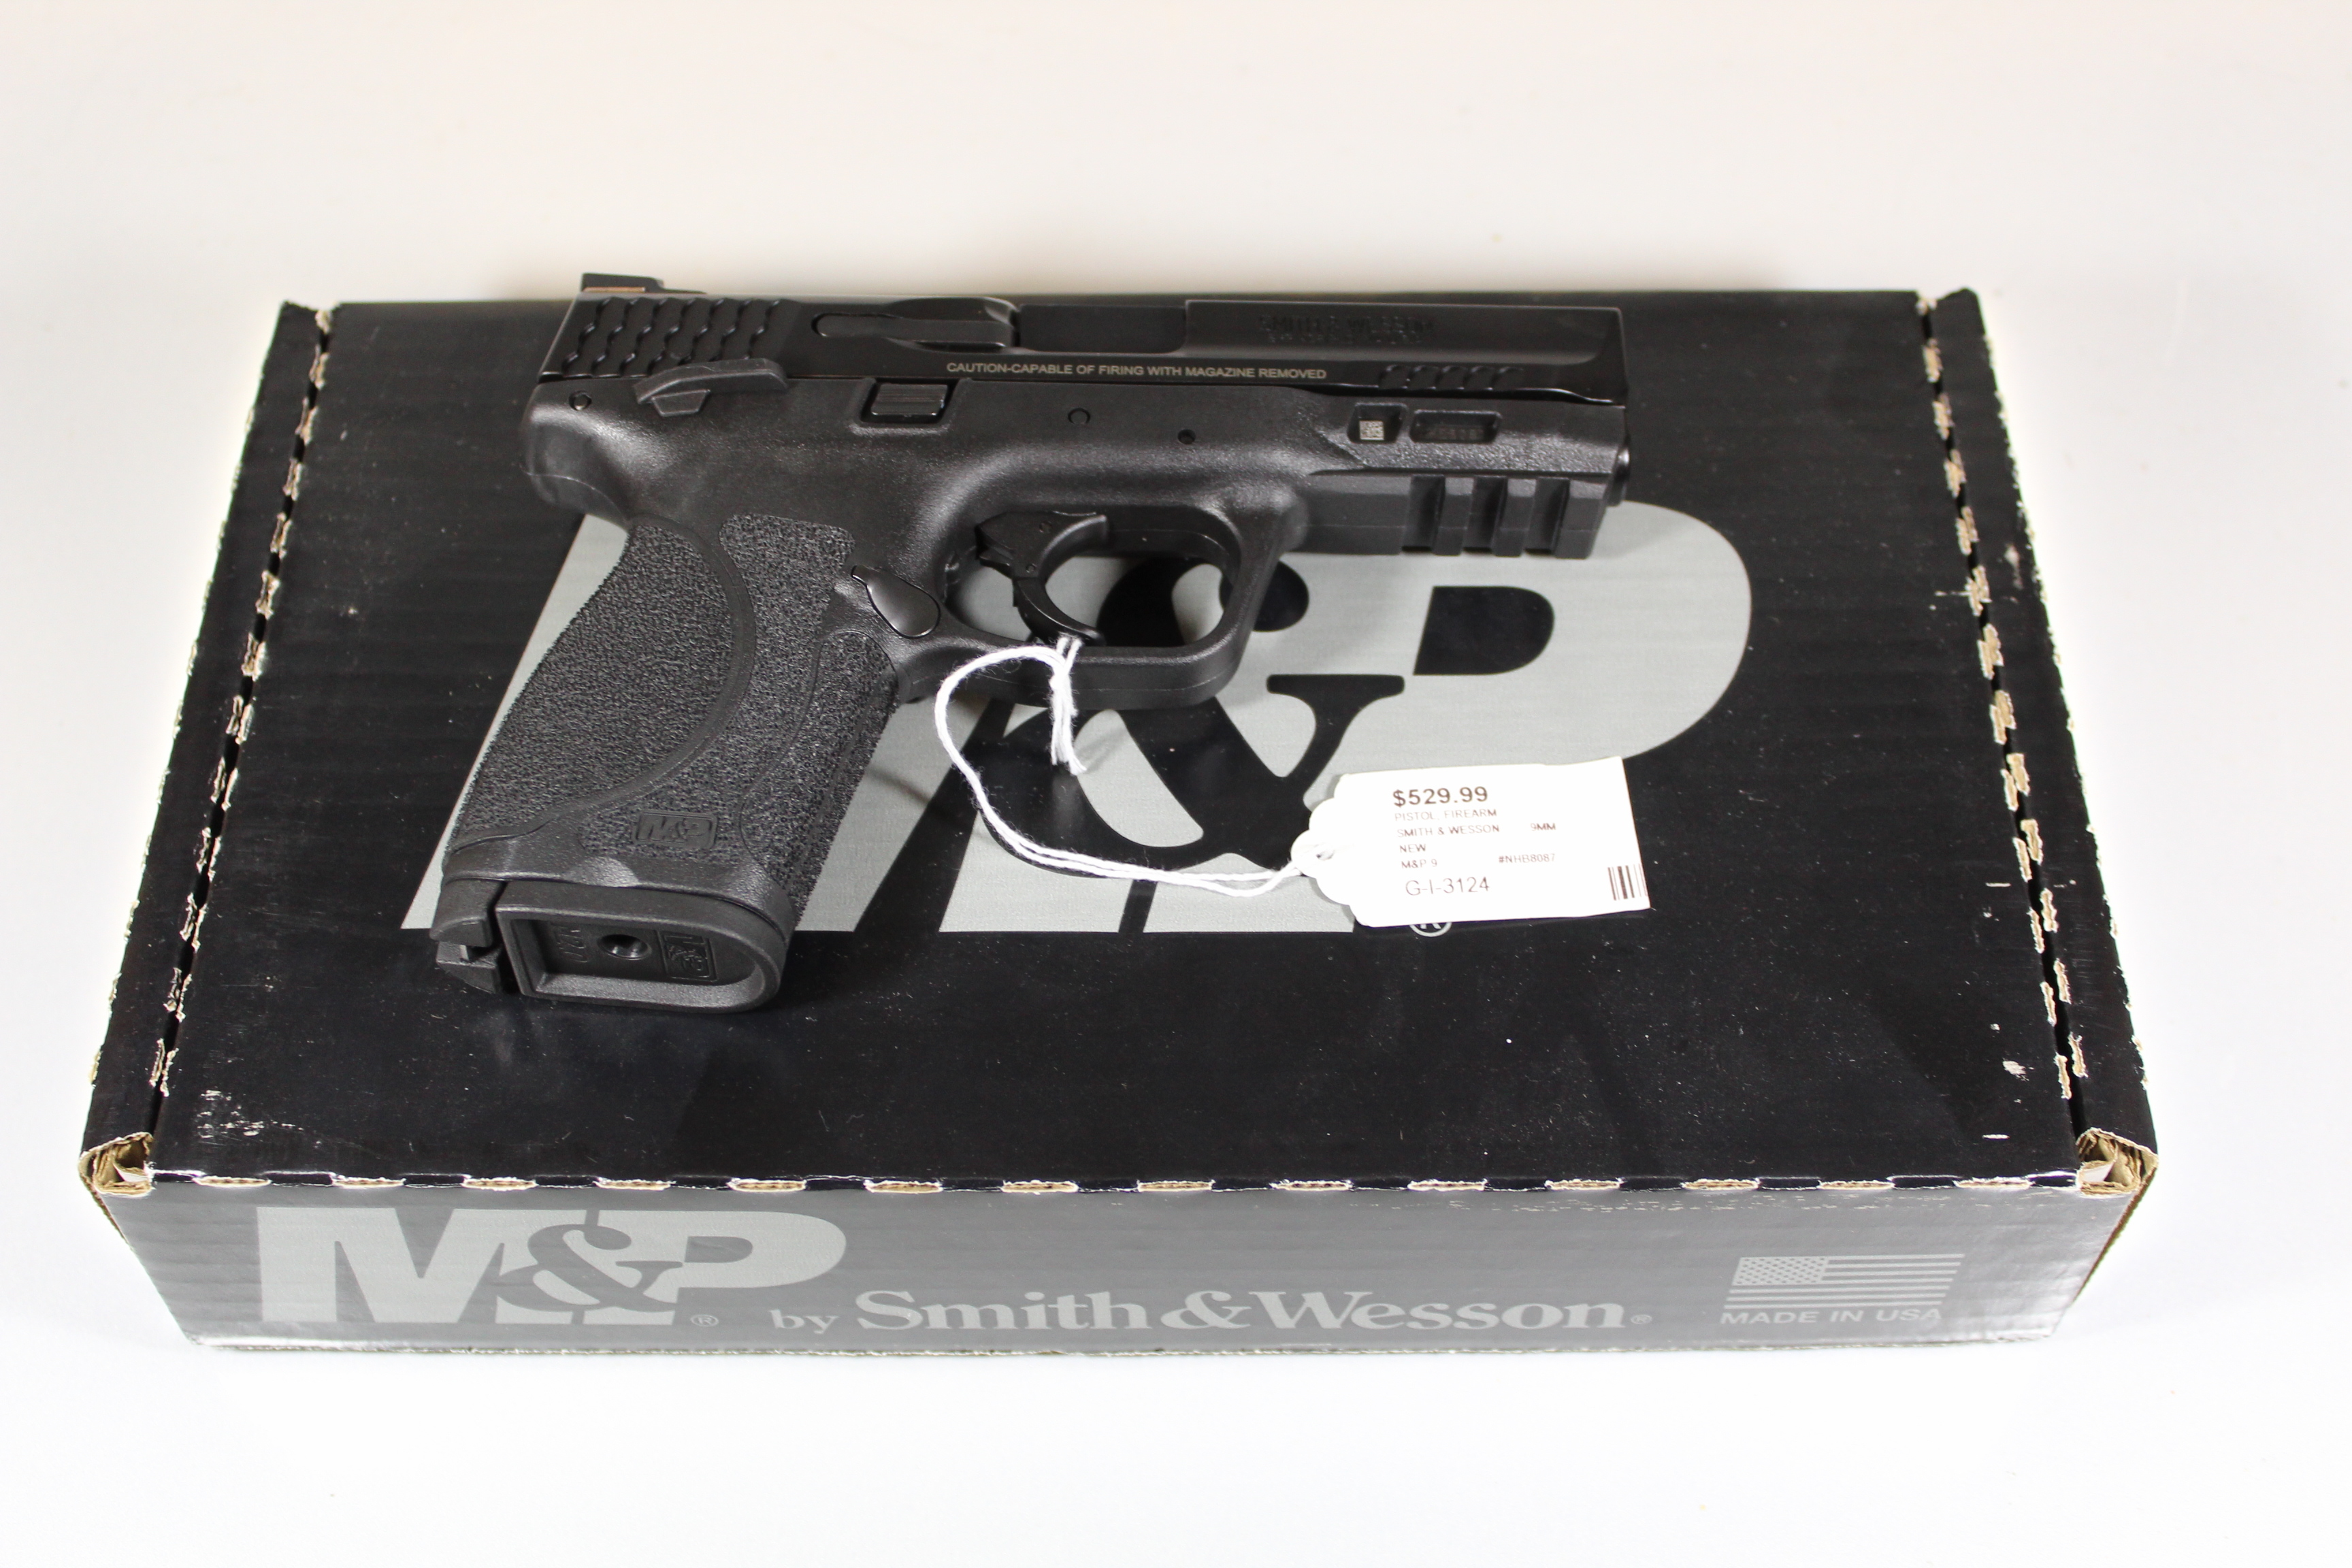 SMITH & WESSON - M&P 9 - PISTOL FIREARM